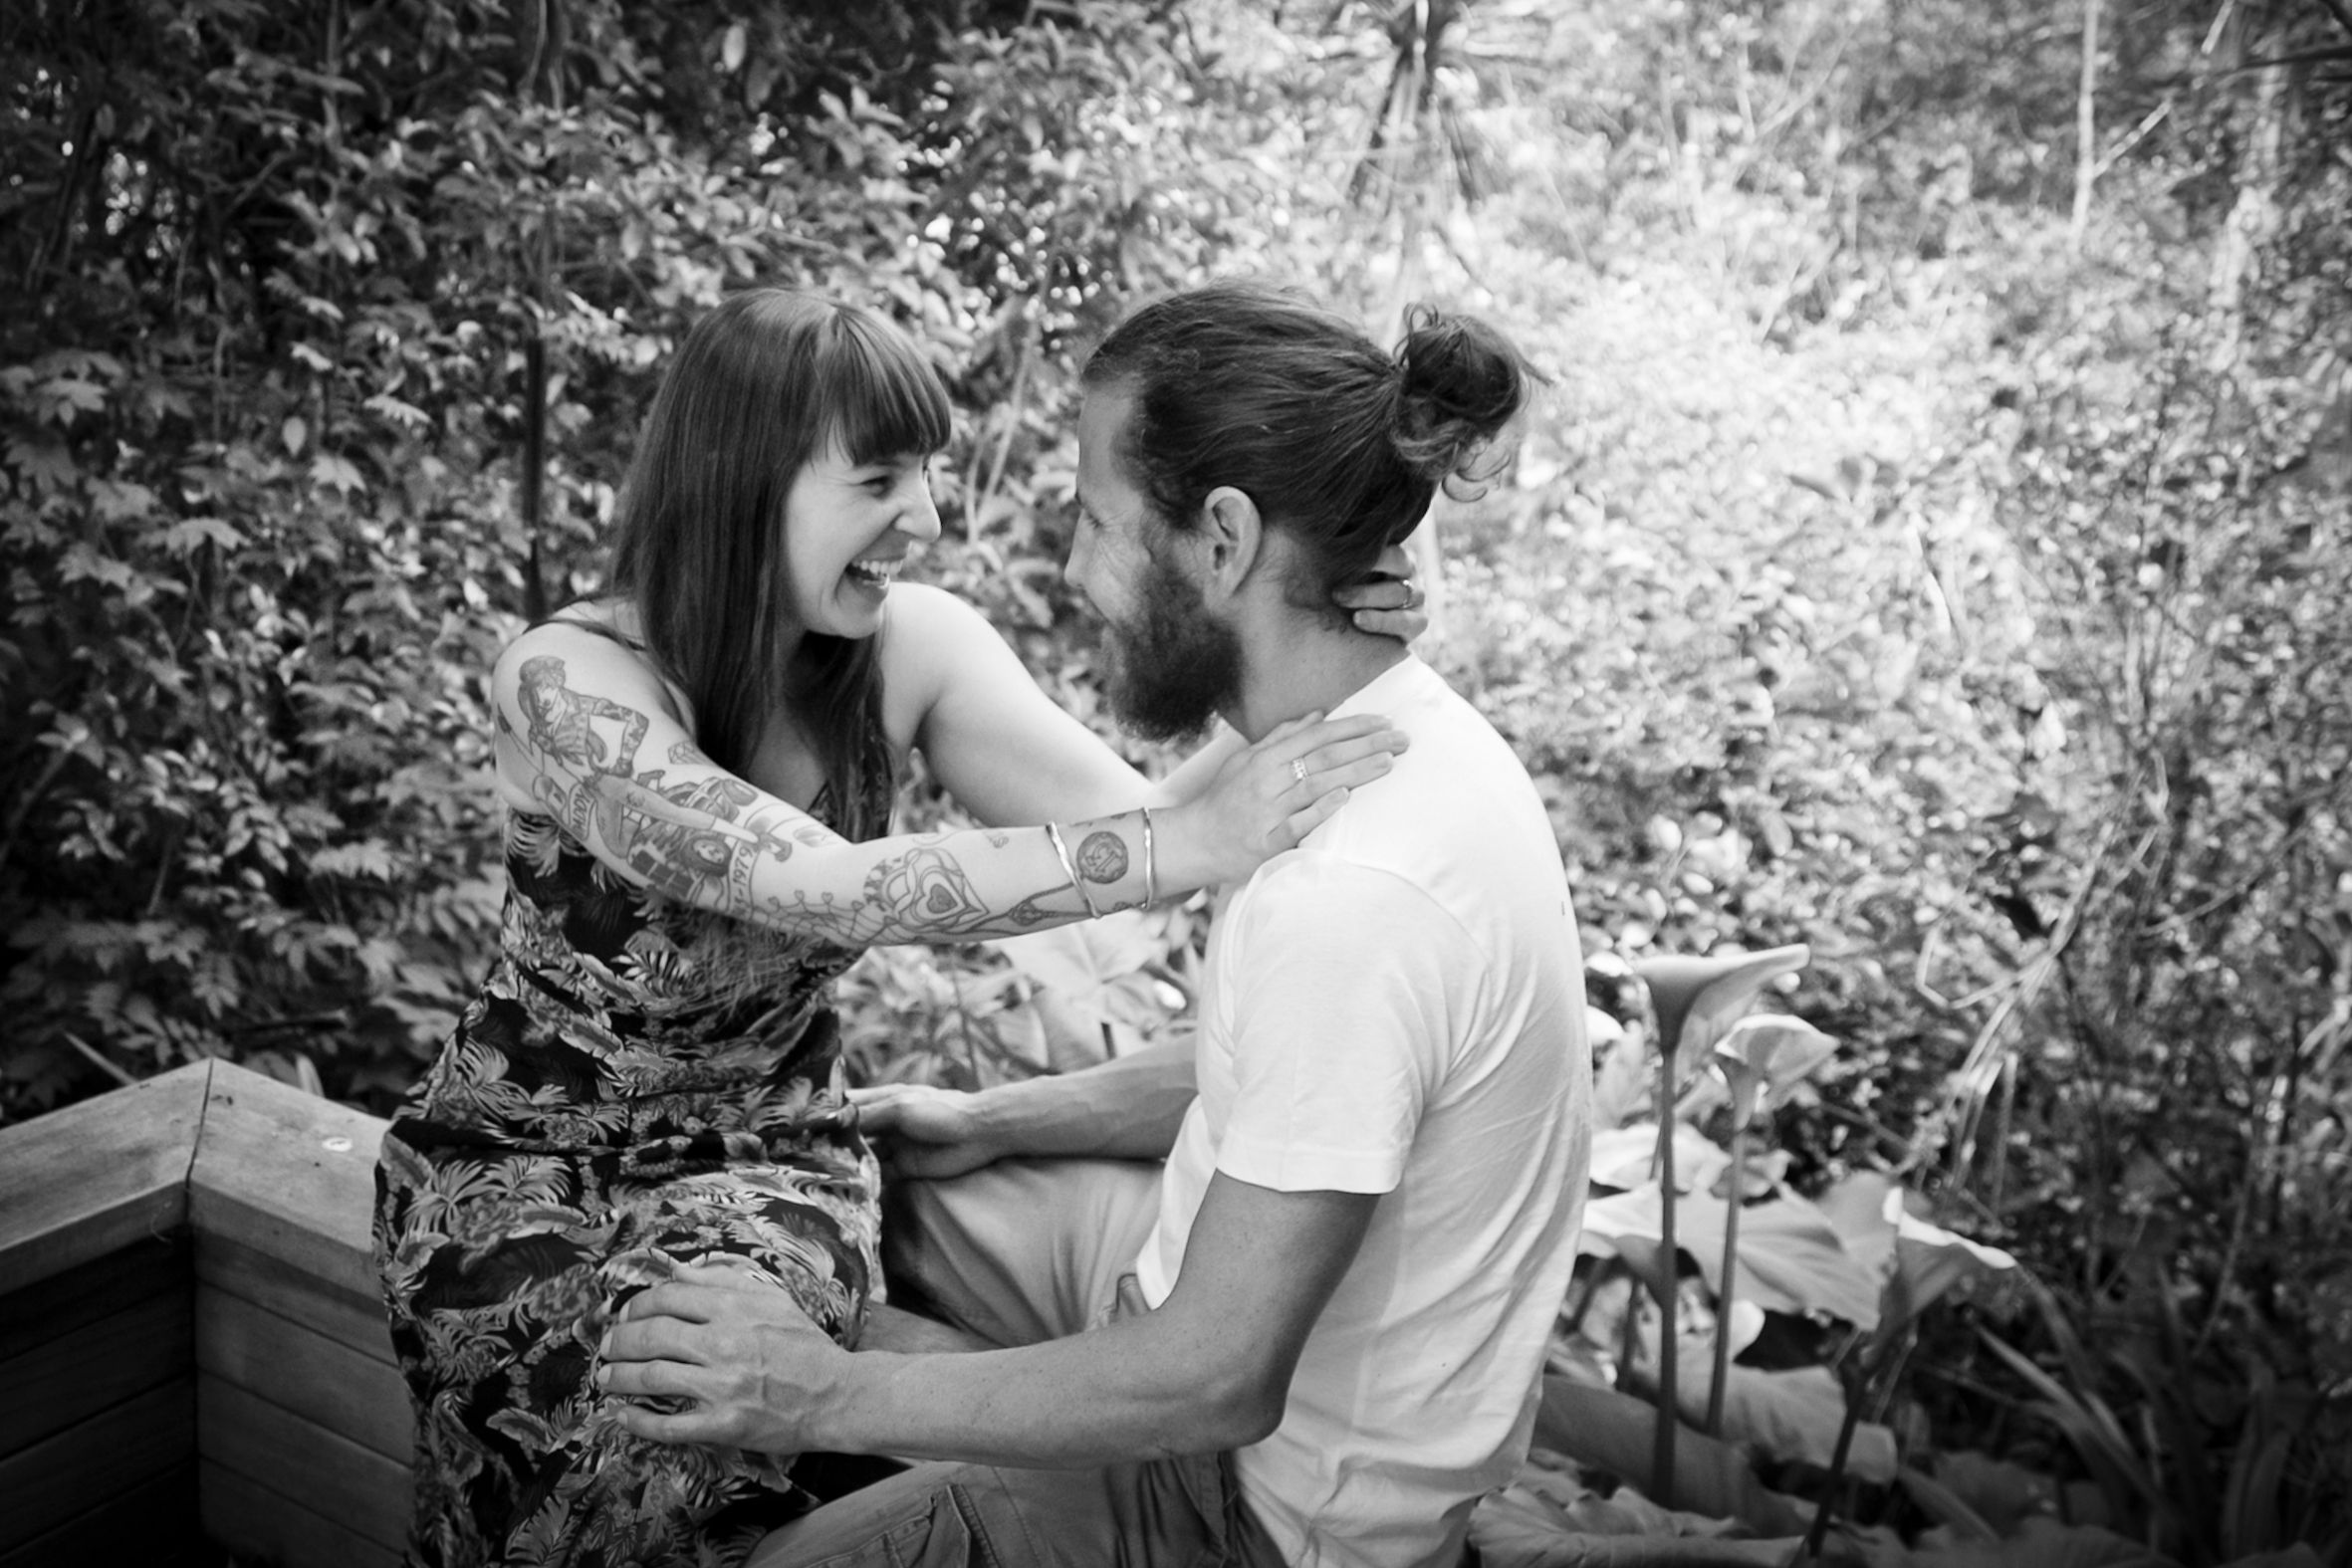 my gorgeous man rocking his beard and man bun in our engagement photos #manbun #beard #tattoos #tattooedgirl